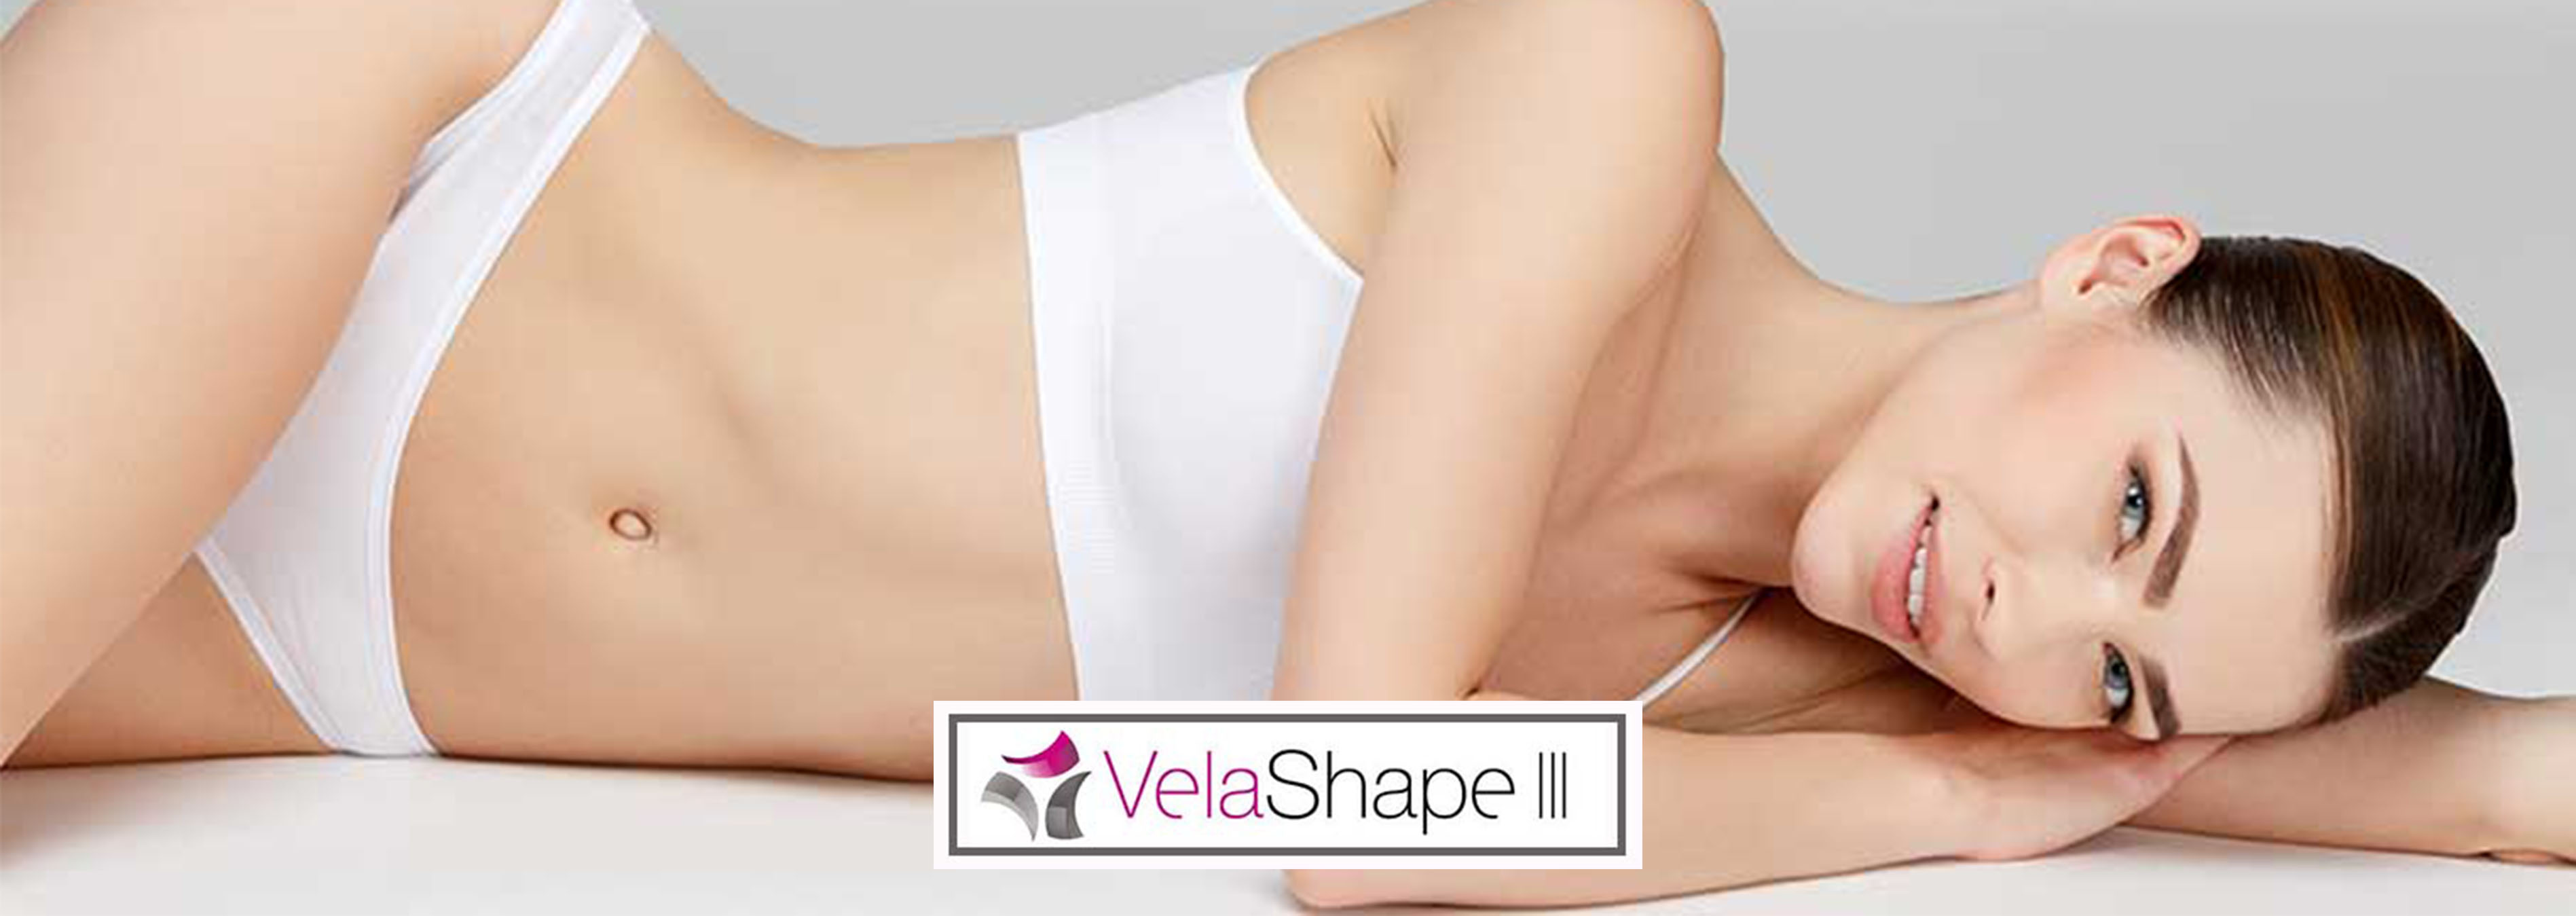 VelaShape will improve body sculpting results after coolsculpting